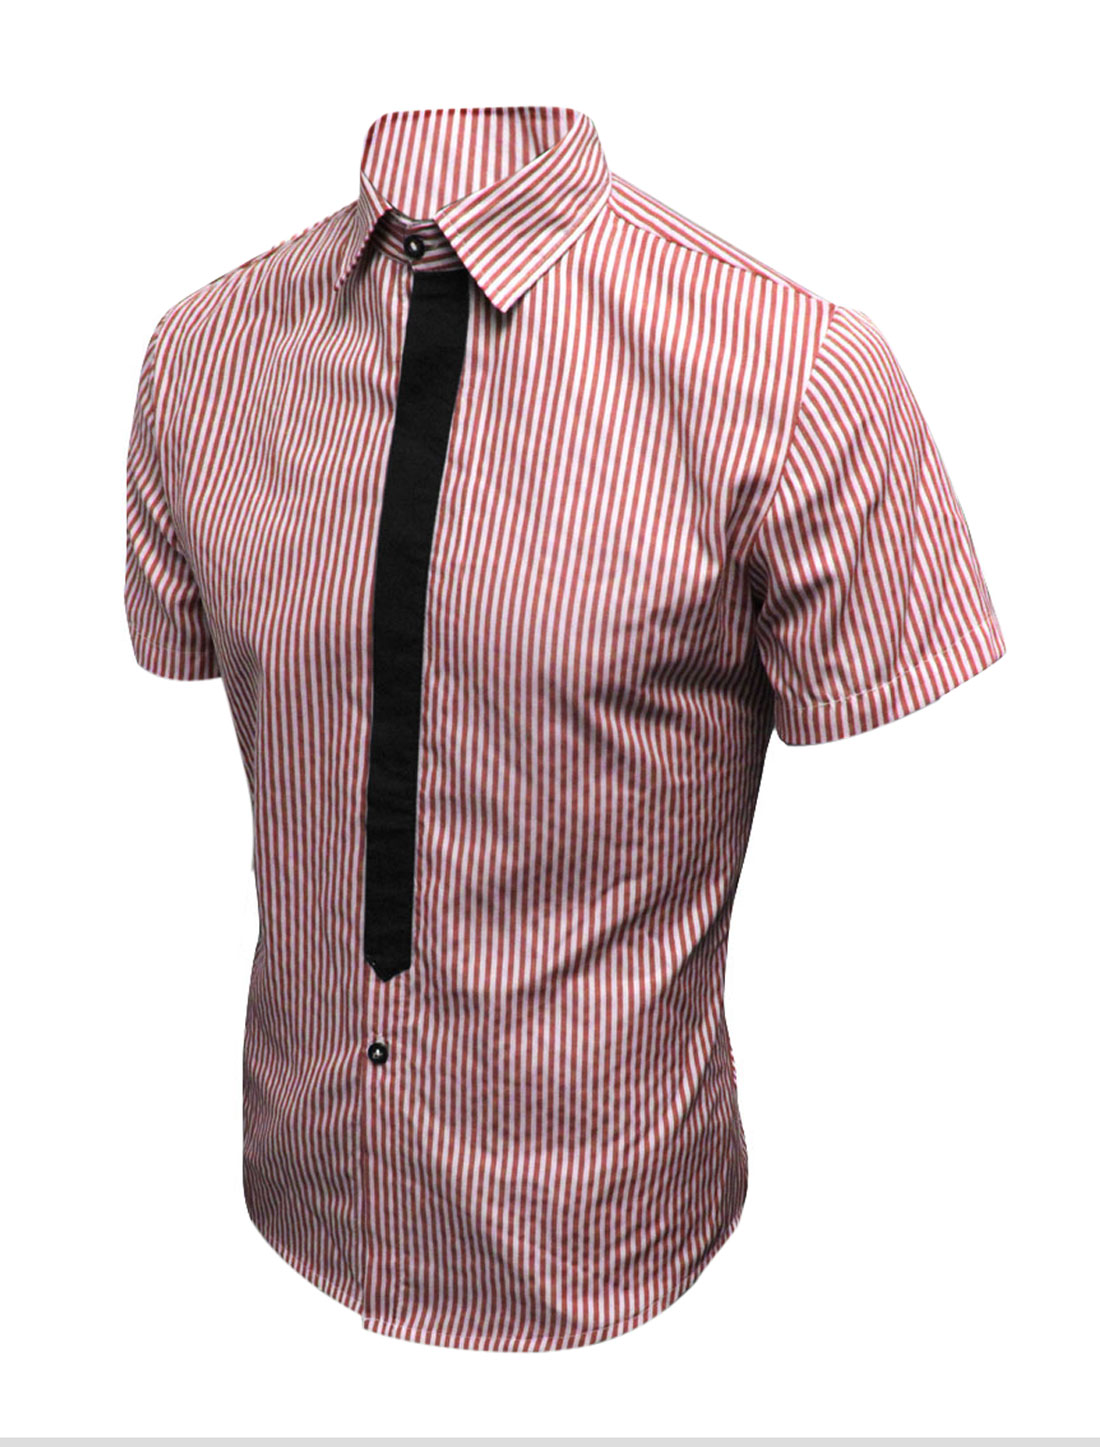 Mens Summer Casual Red Vertical Stripes Pattern NEW Fashion Shirt Tops S